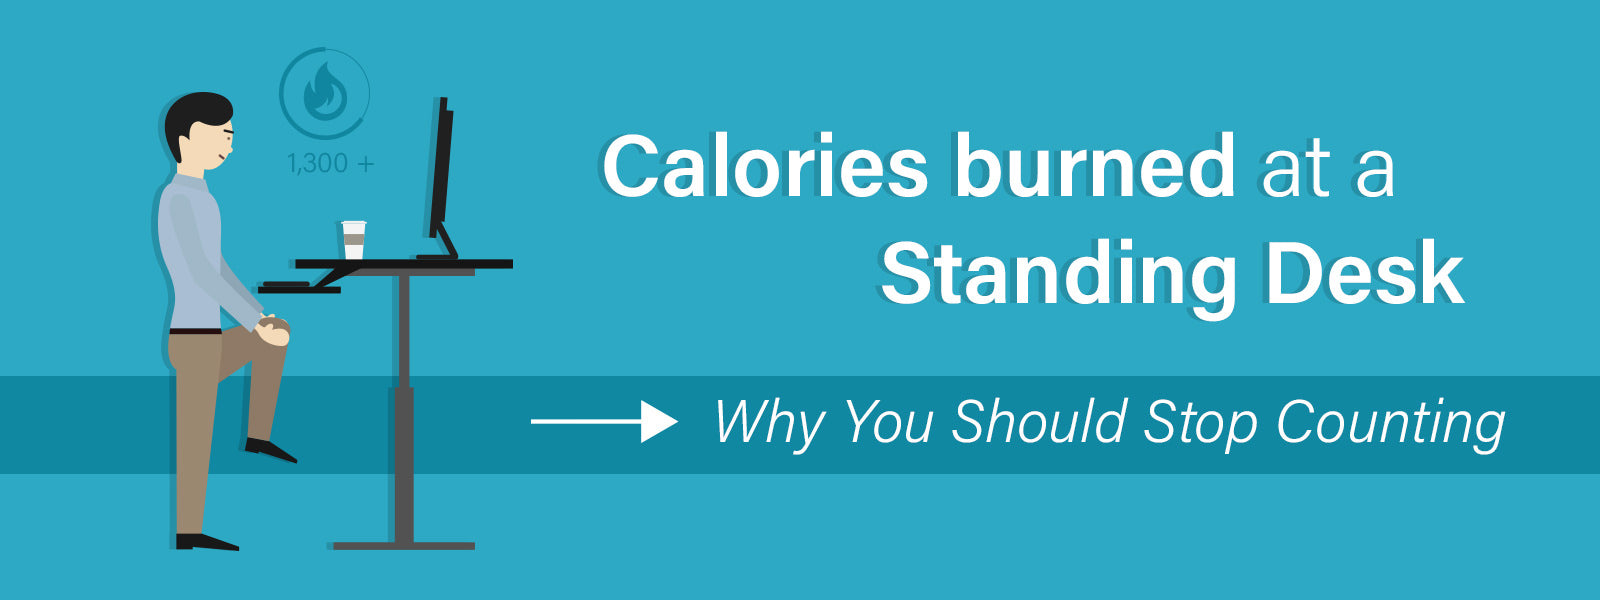 Standing Desk Calories Burned